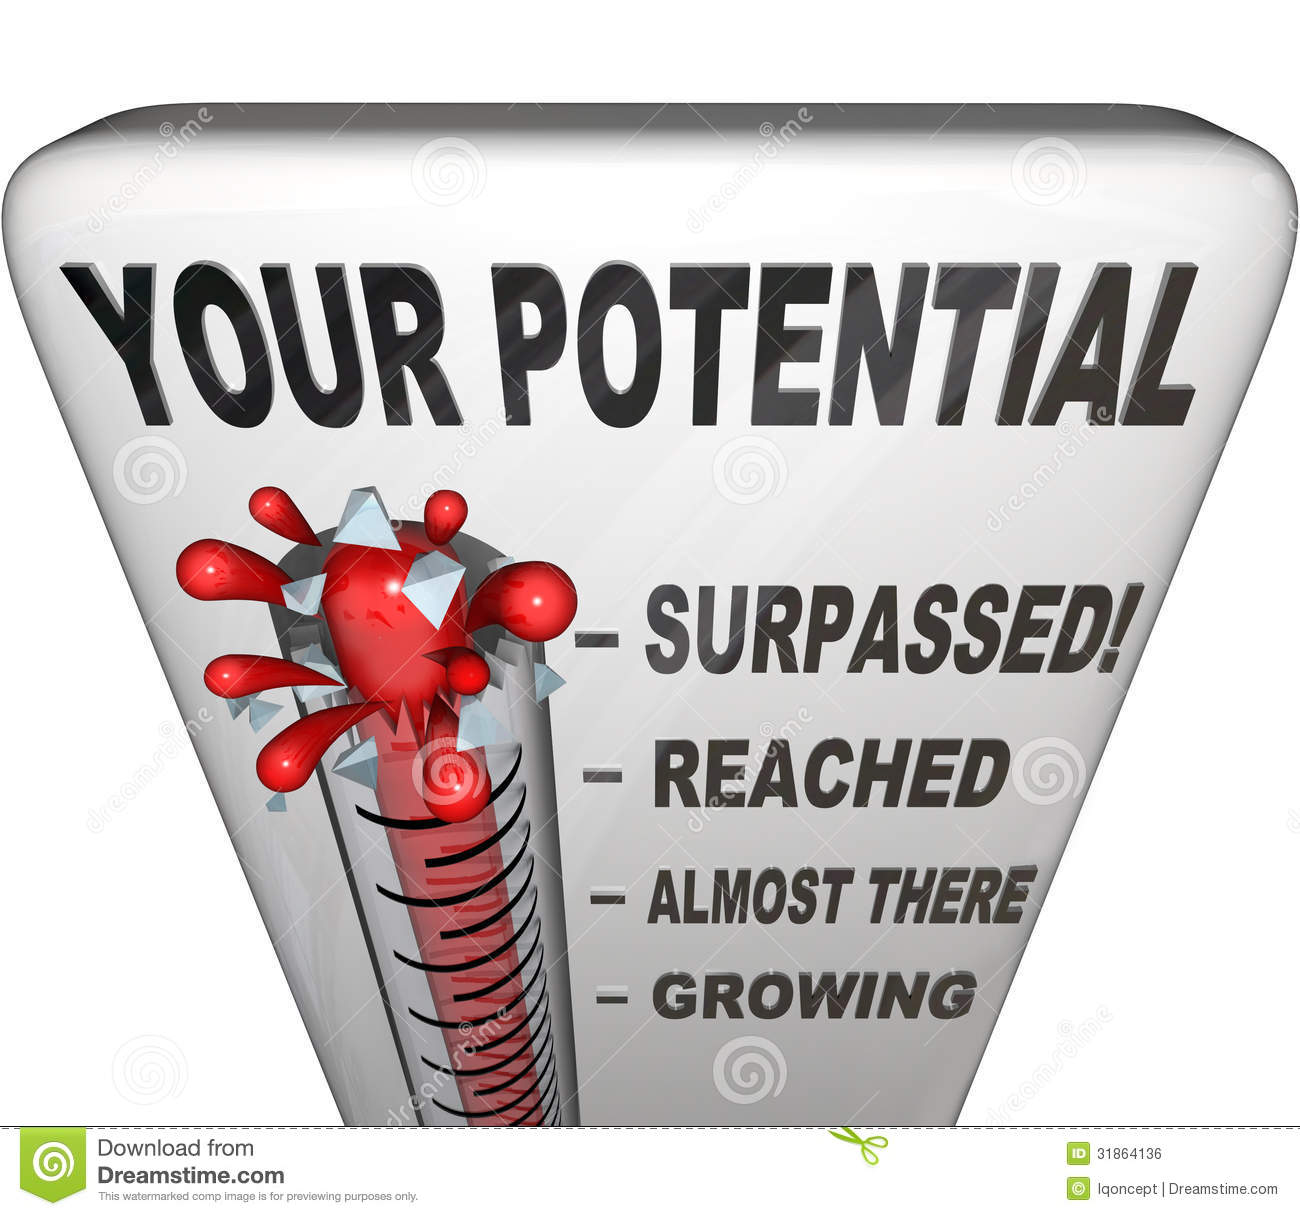 To Maximise The Potential Of: Your Potential Measured Will You Reach Your Full Success